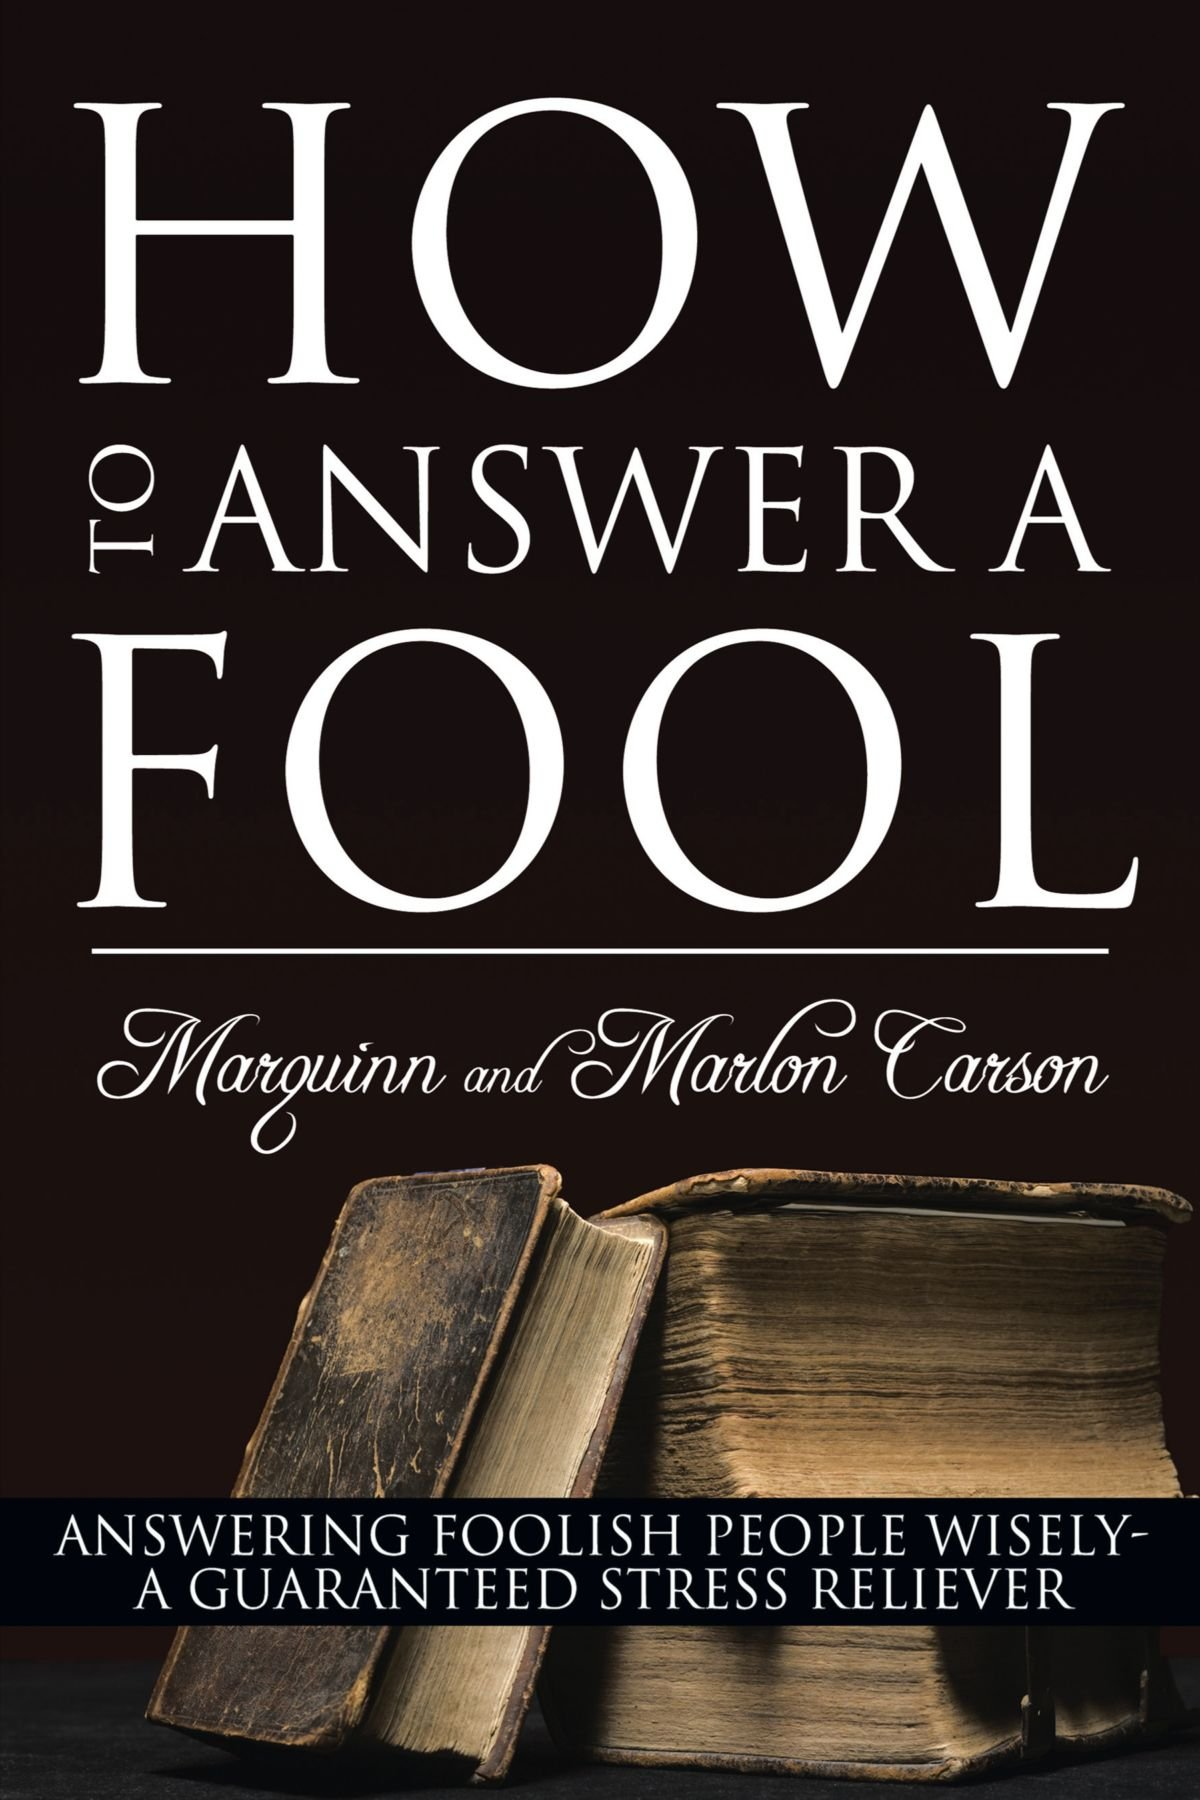 Download How To Answer A Fool: Answering Foolish People Wisely- A Guaranteed Stress Reliever PDF